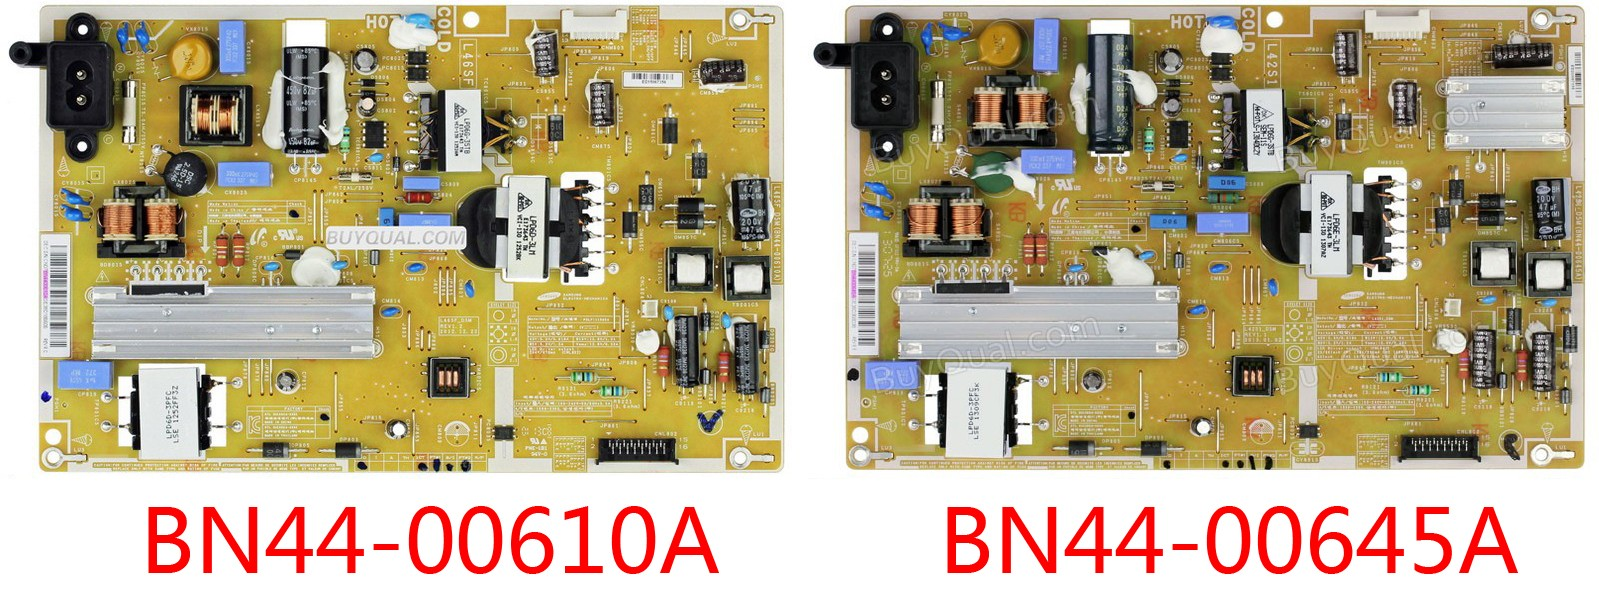 Samsung BN44-00610A BN44-00645A L46SF_DSM PSLF111S05A BN4400610A Power Supply / LED Board - New condition